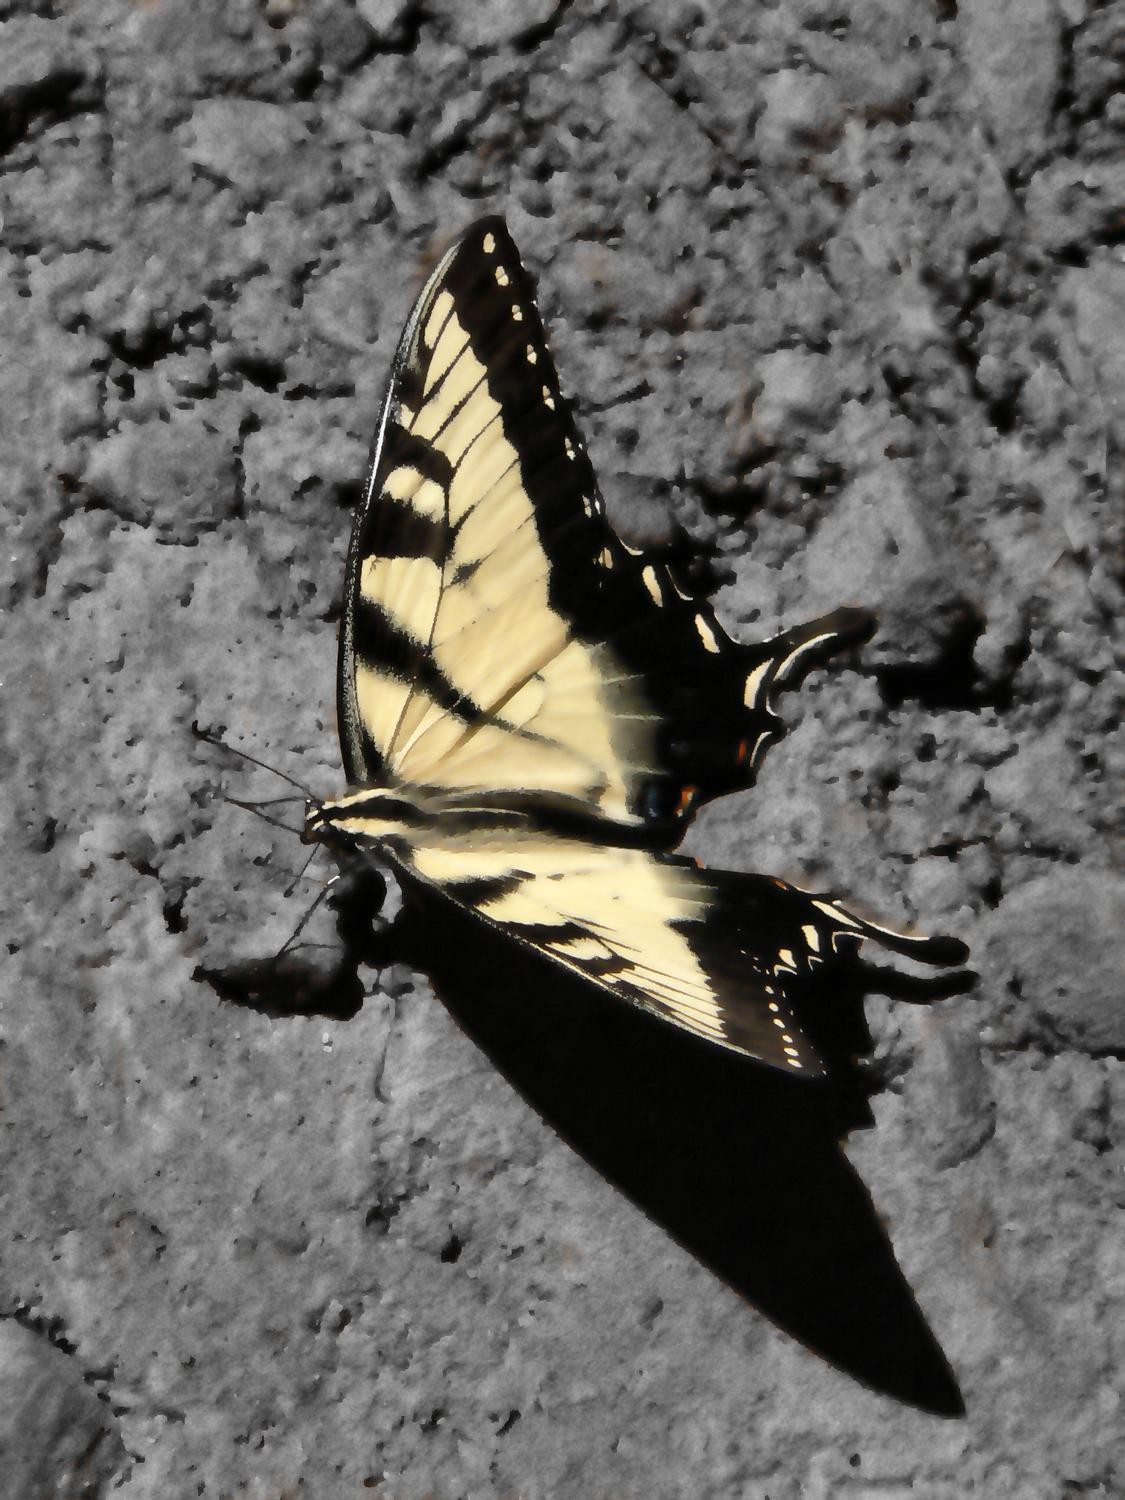 - Tiger swallowtail - Techno-Impressionist Museum - Techno-Impressionism - art - beautiful - photo photography picture - by Tony Karp